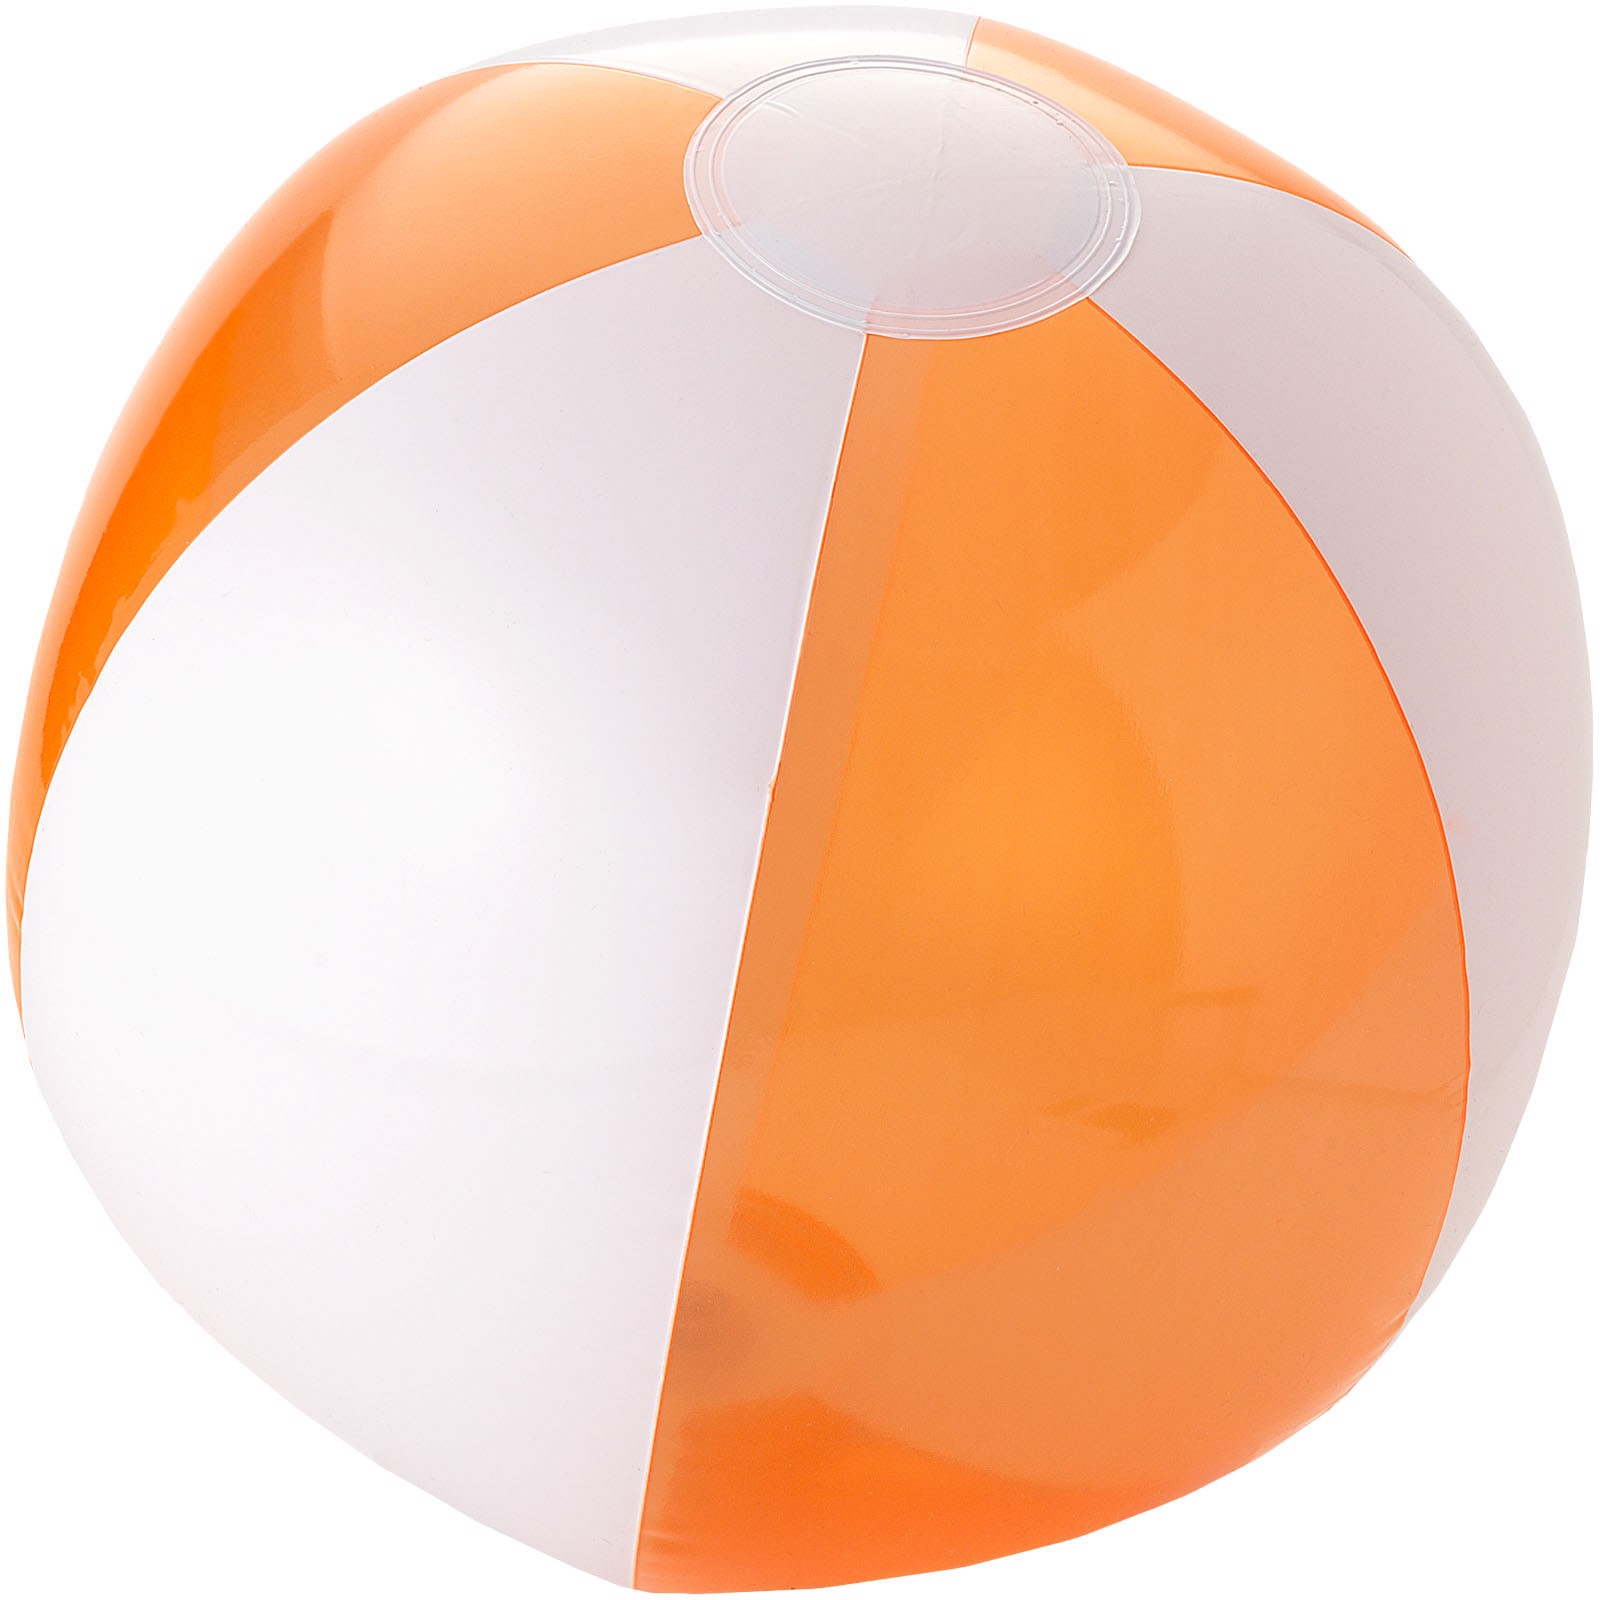 Bondi solid and transparent beach ball - Transparent Orange / White